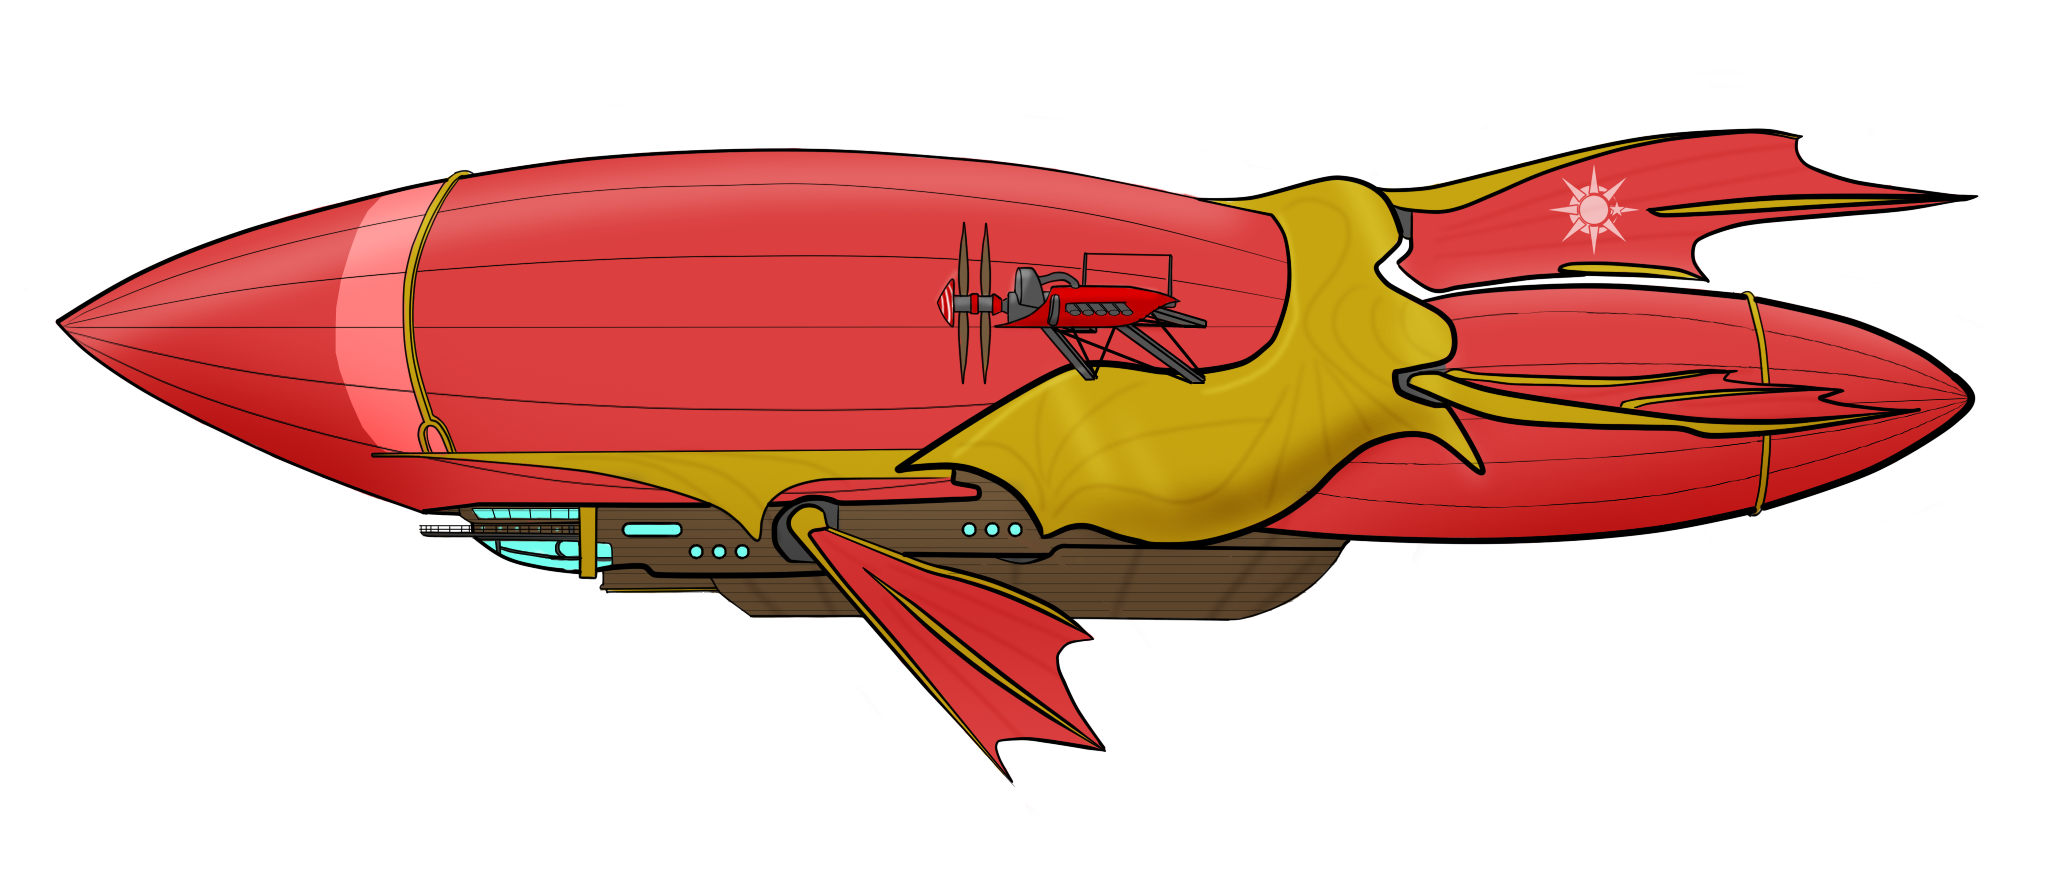 Airship drawing fire. Storm s profile noble